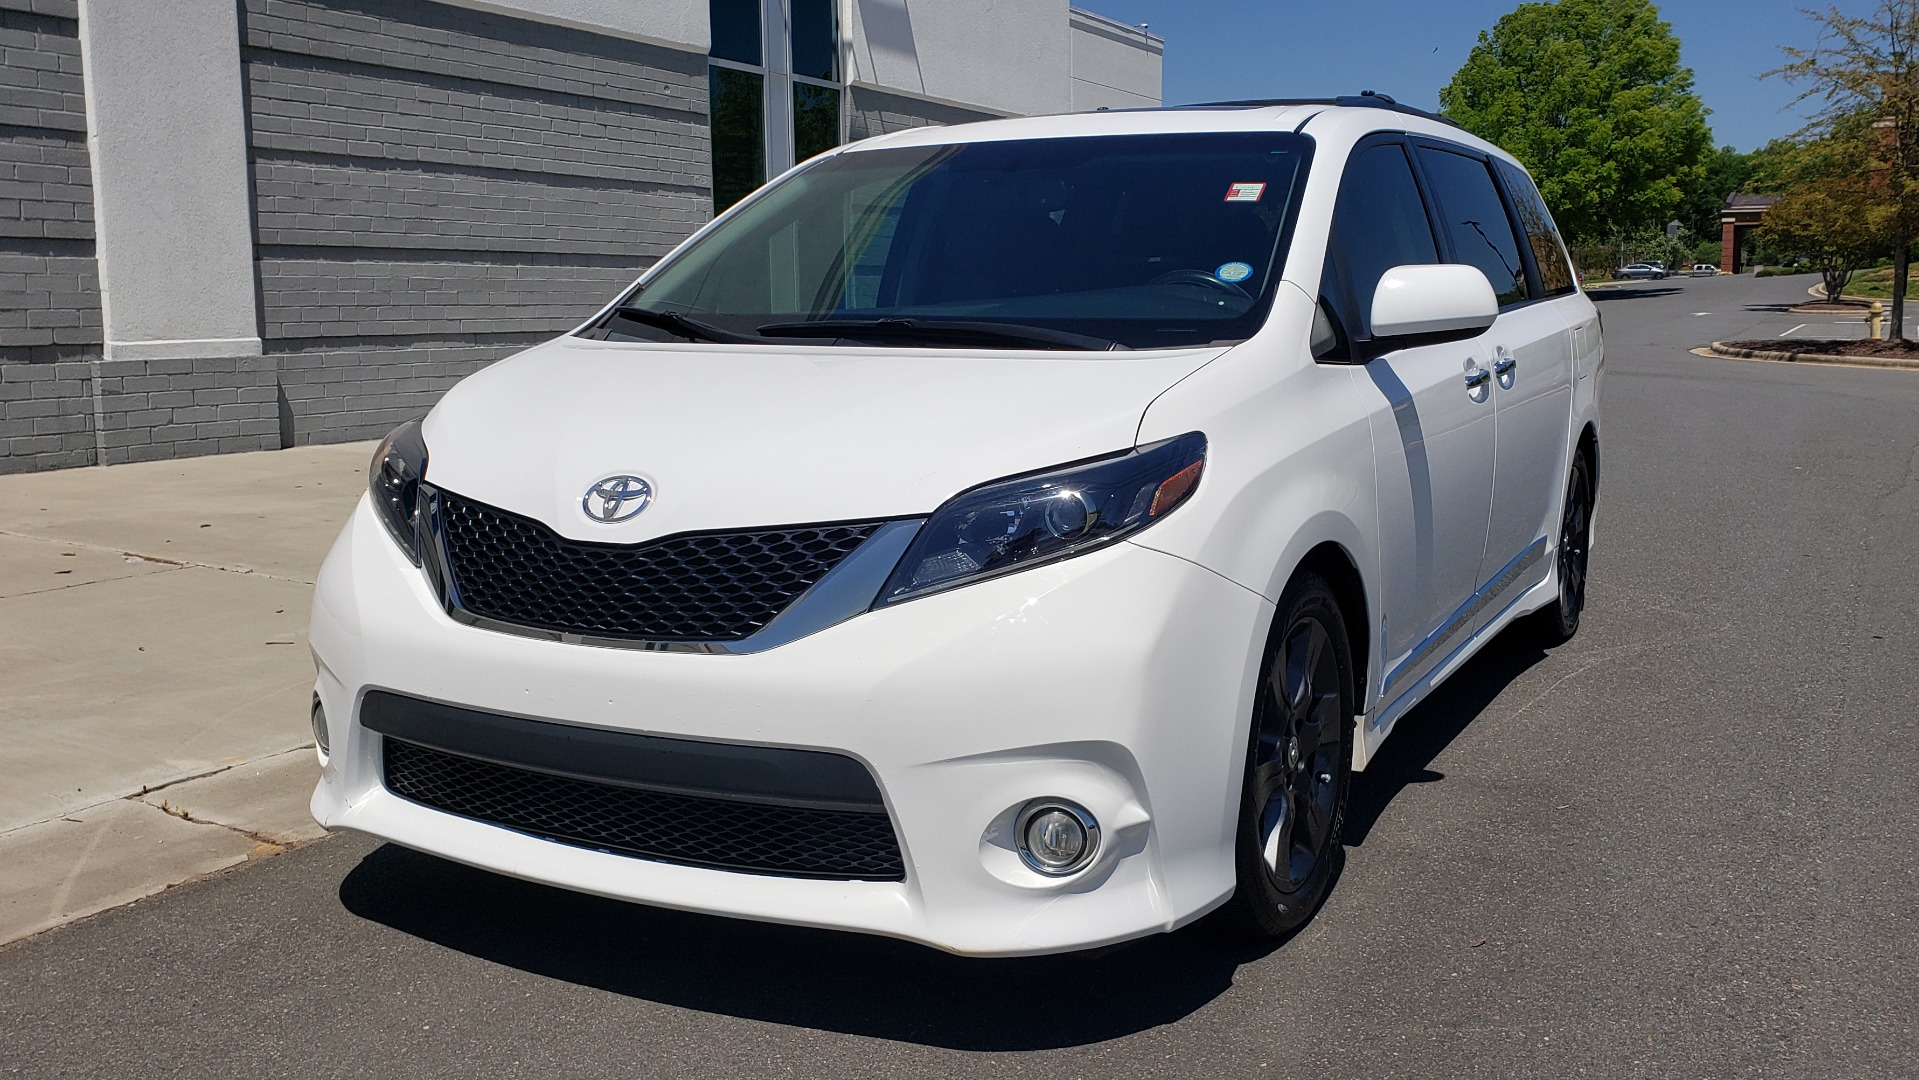 Used 2015 Toyota SIENNA SE 3.5L / FWD / 3-ROWS / 8-PASS / SUNROOF / DVD / REARVIEW for sale $21,995 at Formula Imports in Charlotte NC 28227 1